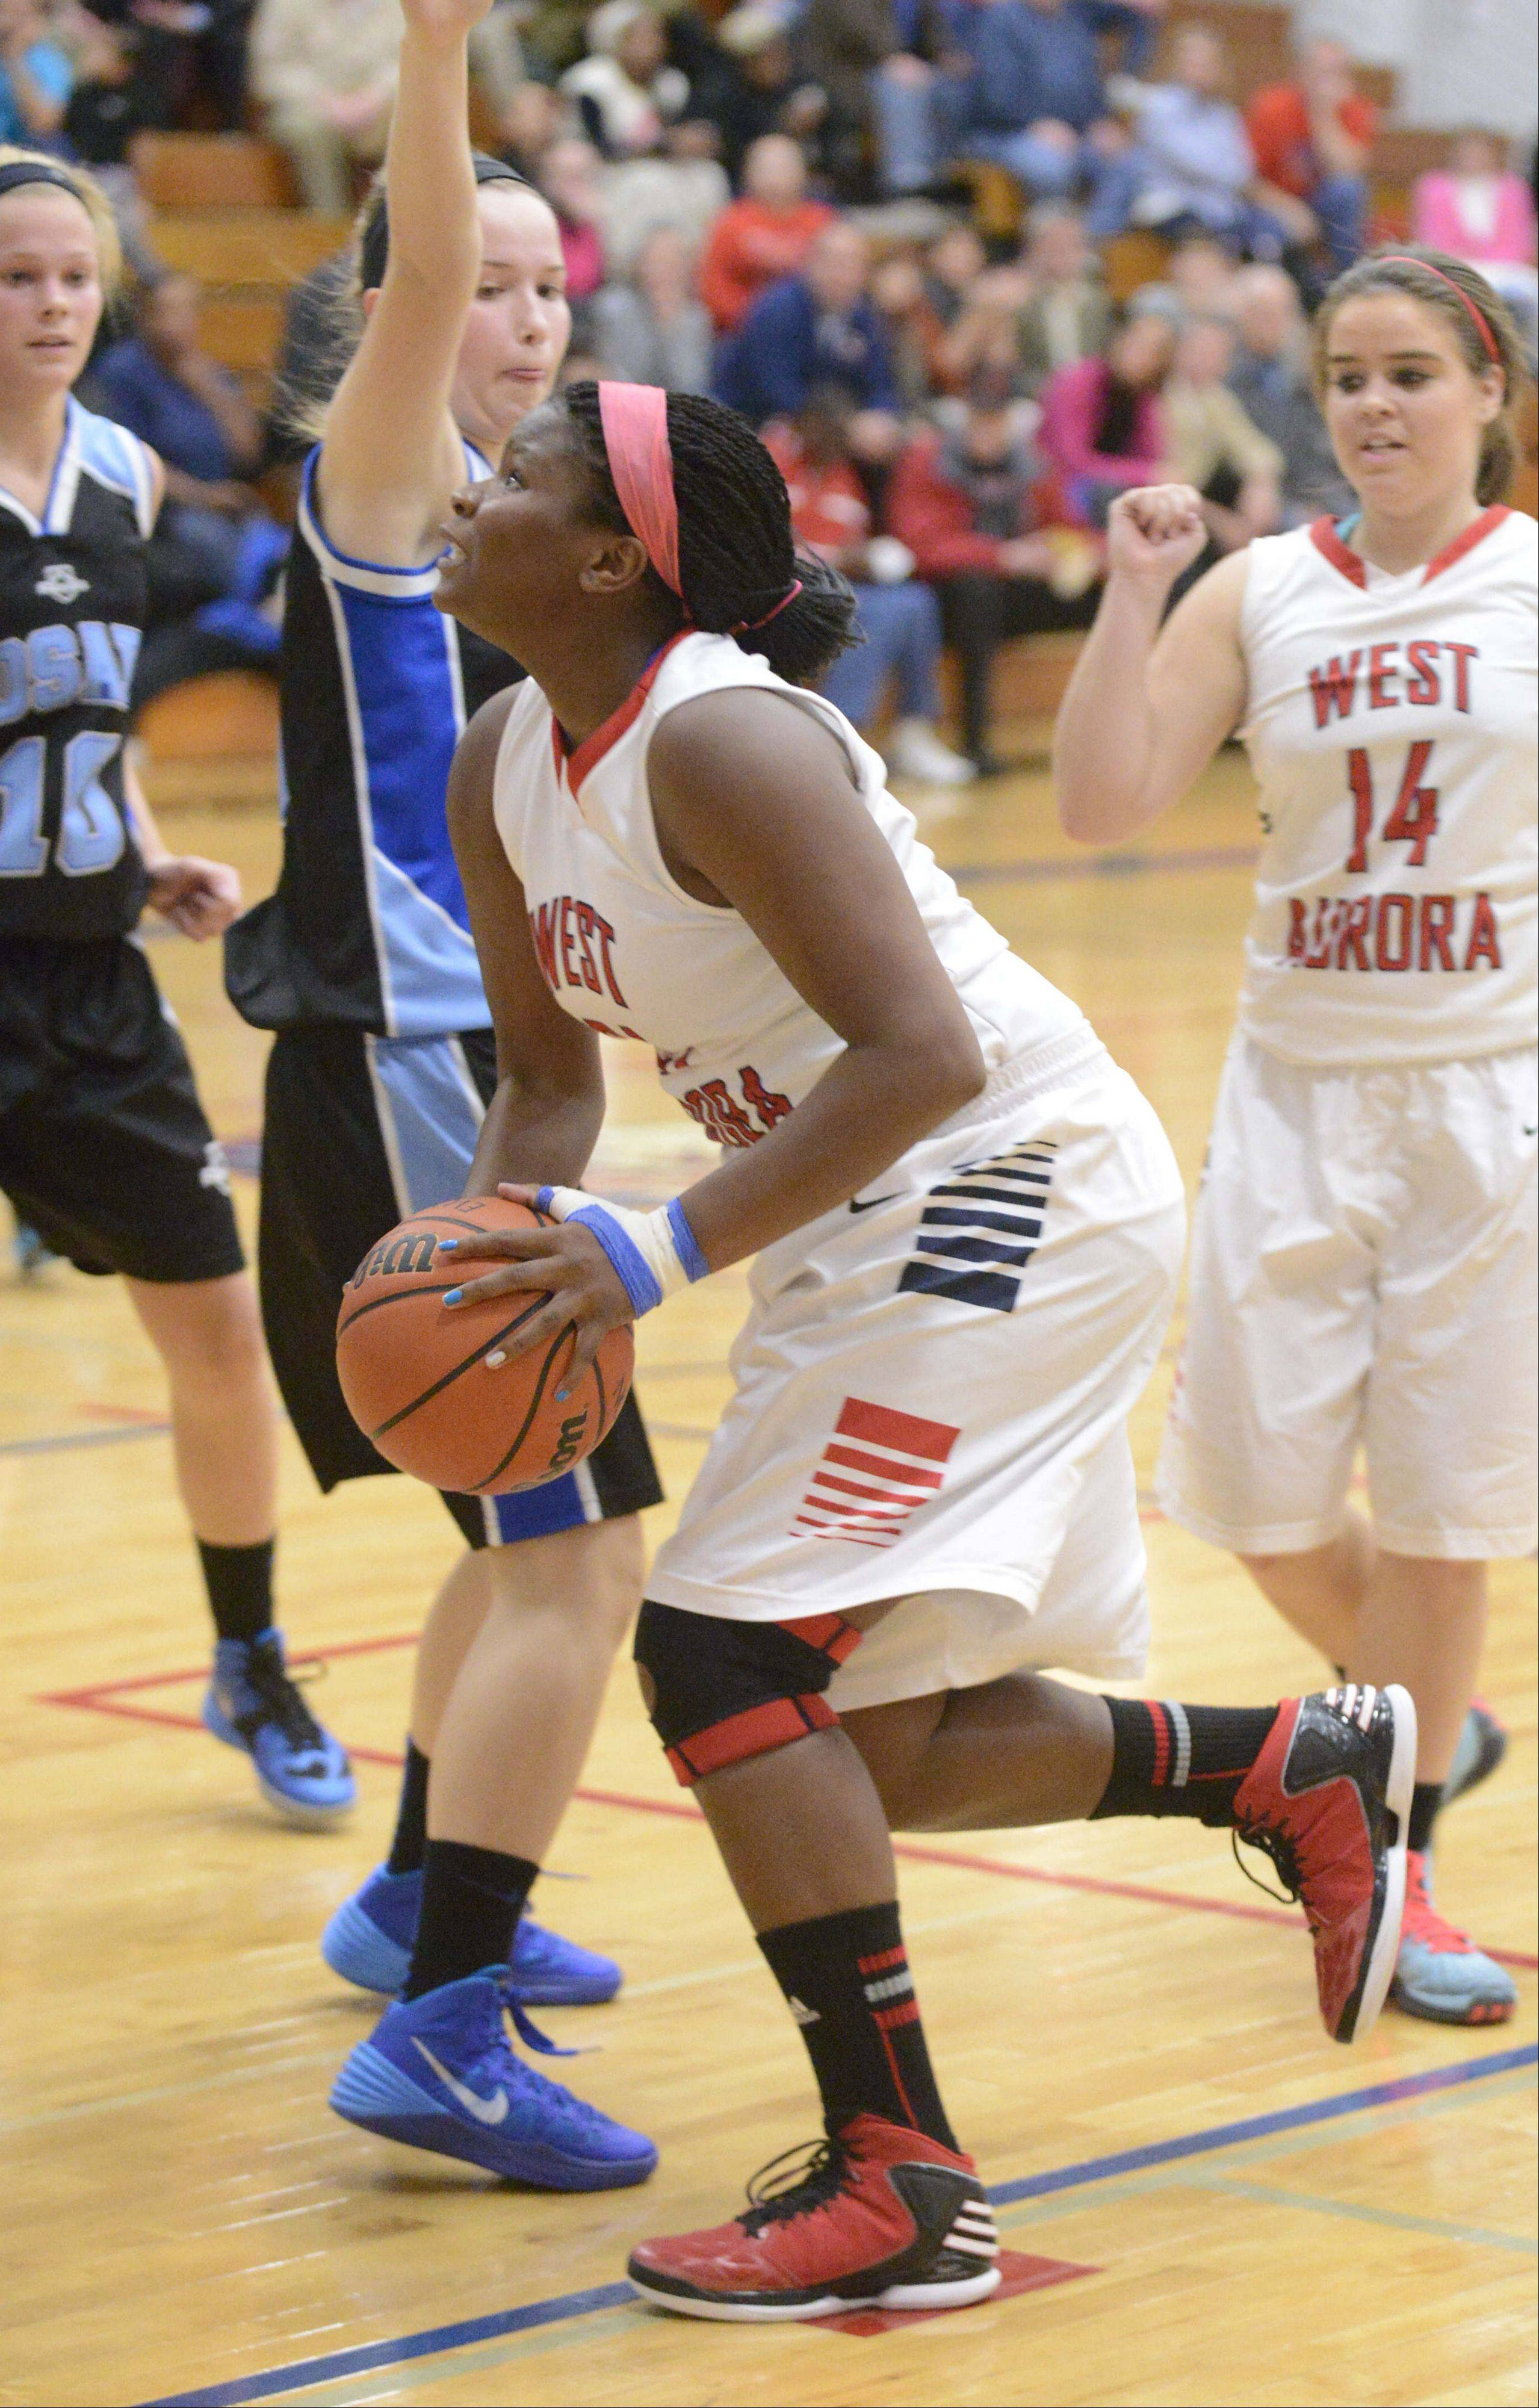 Images from the Rosary vs. West Aurora girls basketball game Tuesday, December 3, 2013.